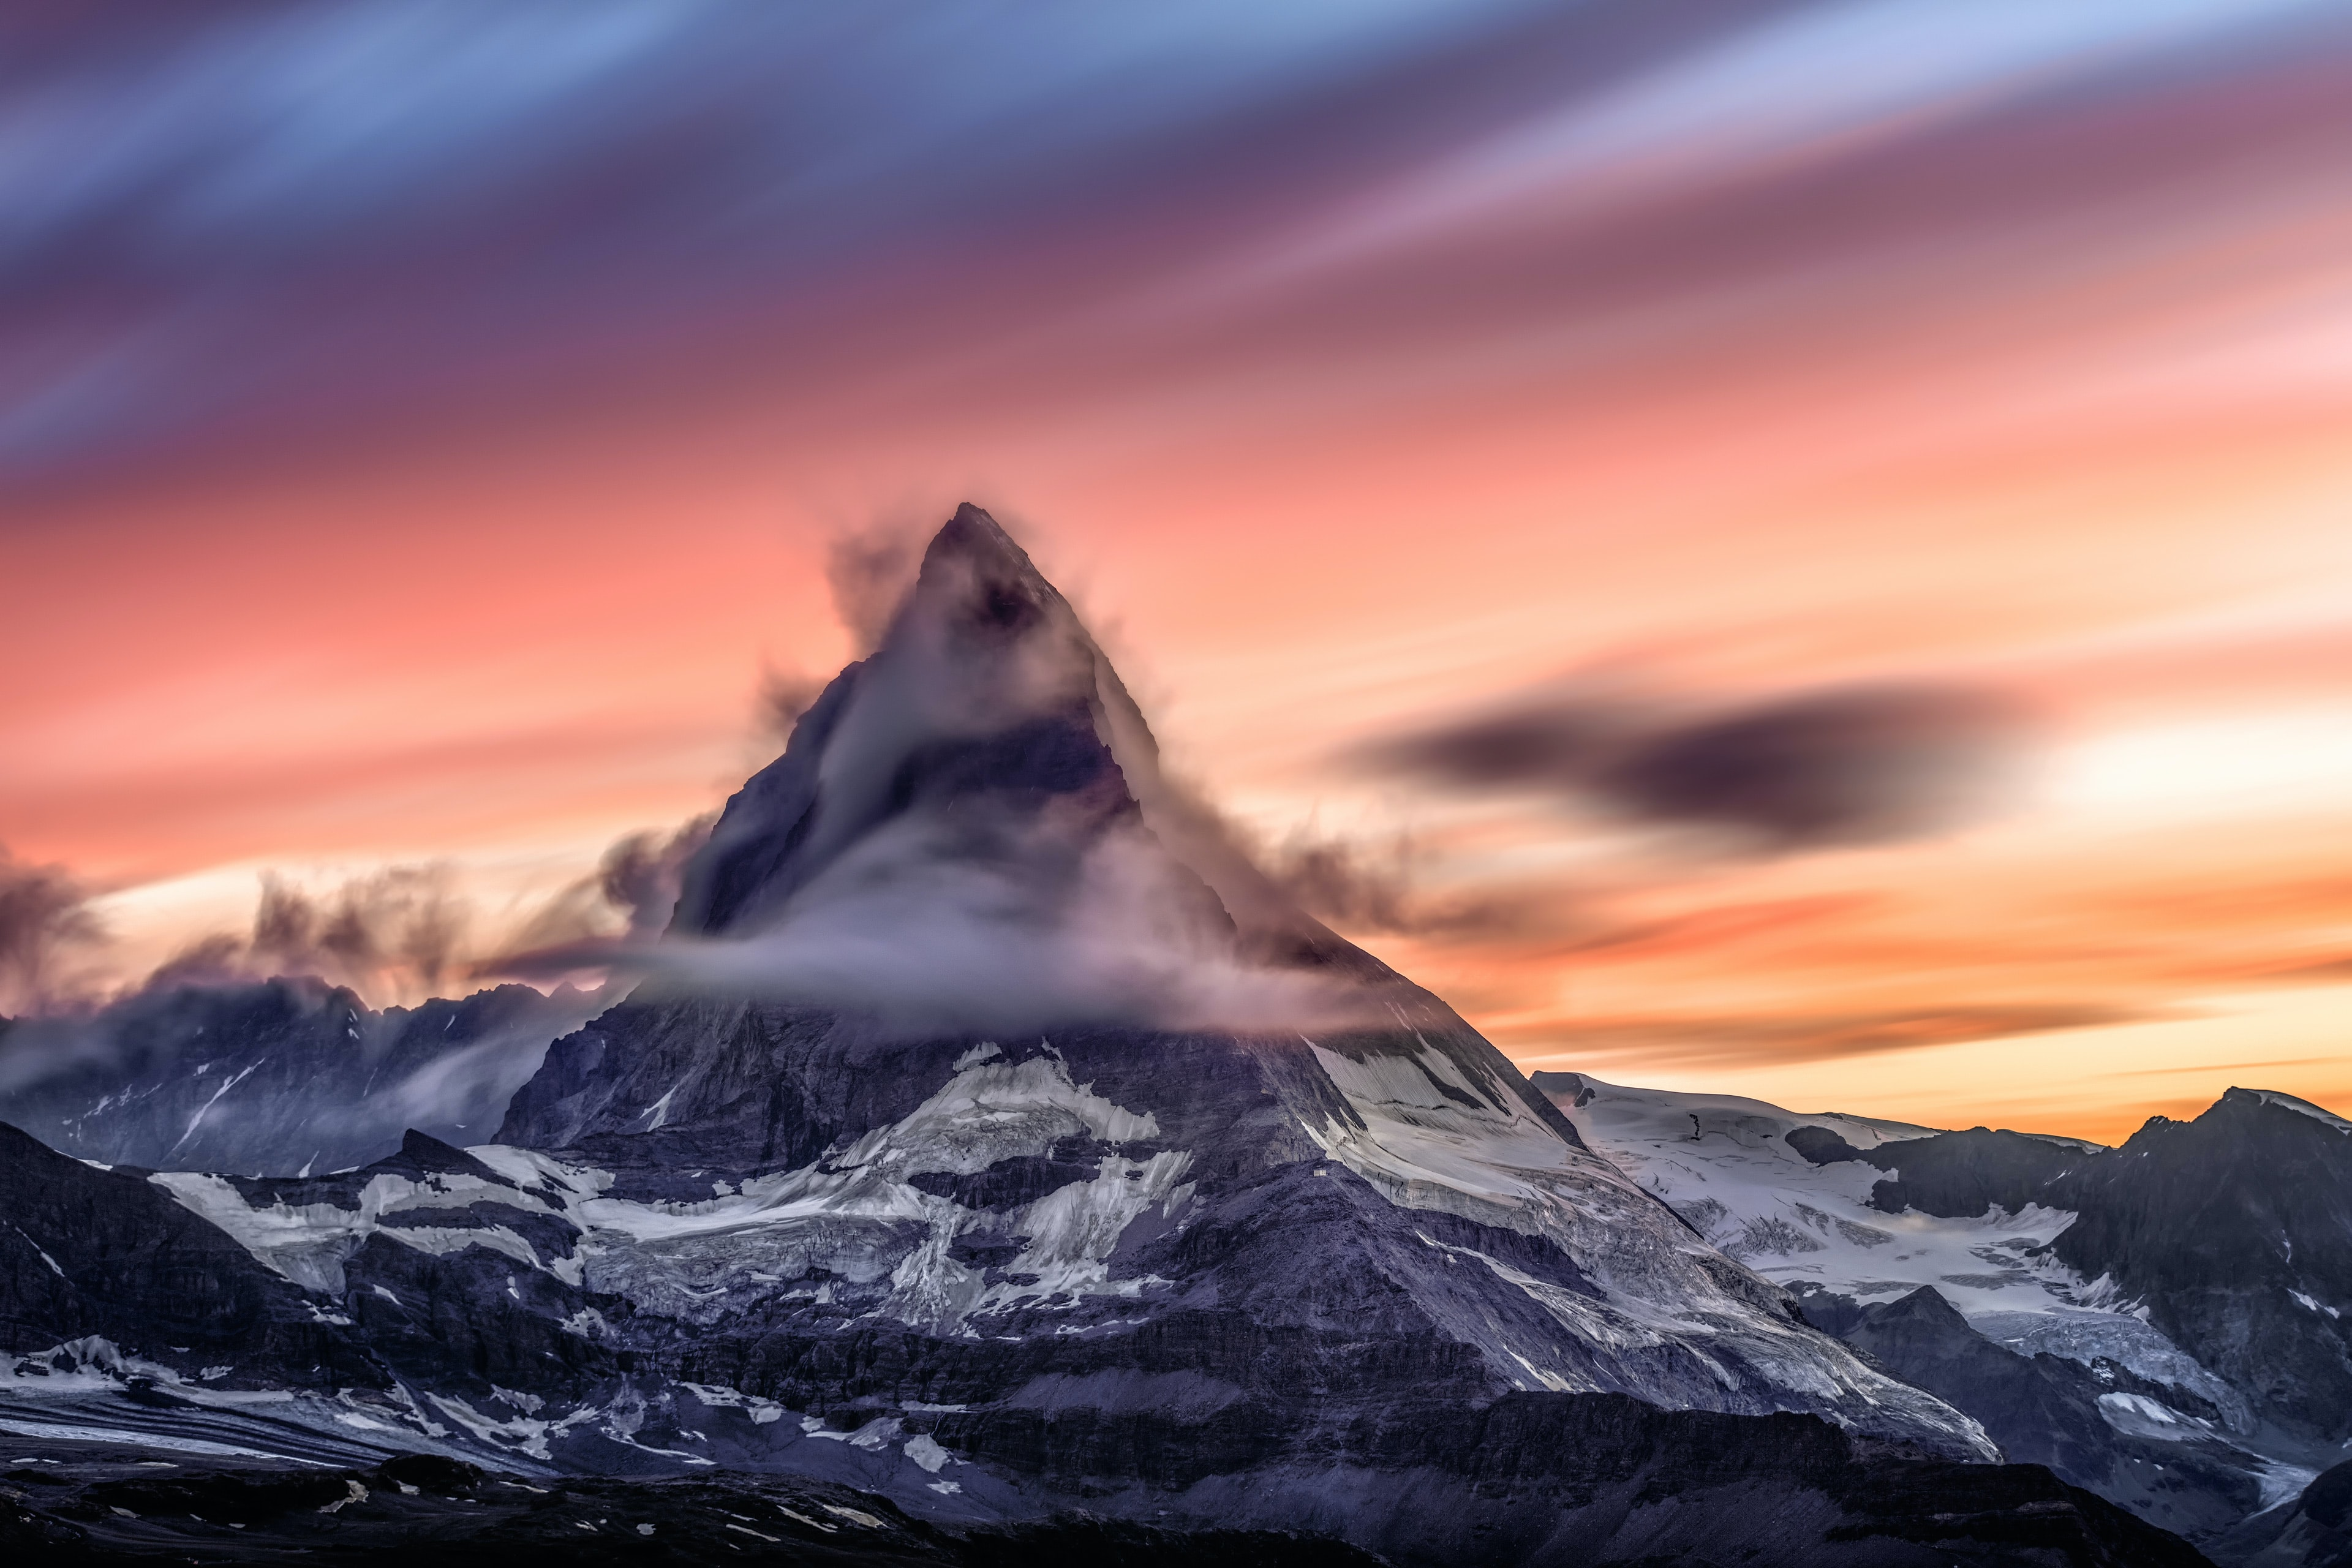 Snowcapped mountain peak on a cloudy sunrise in Matterhorn